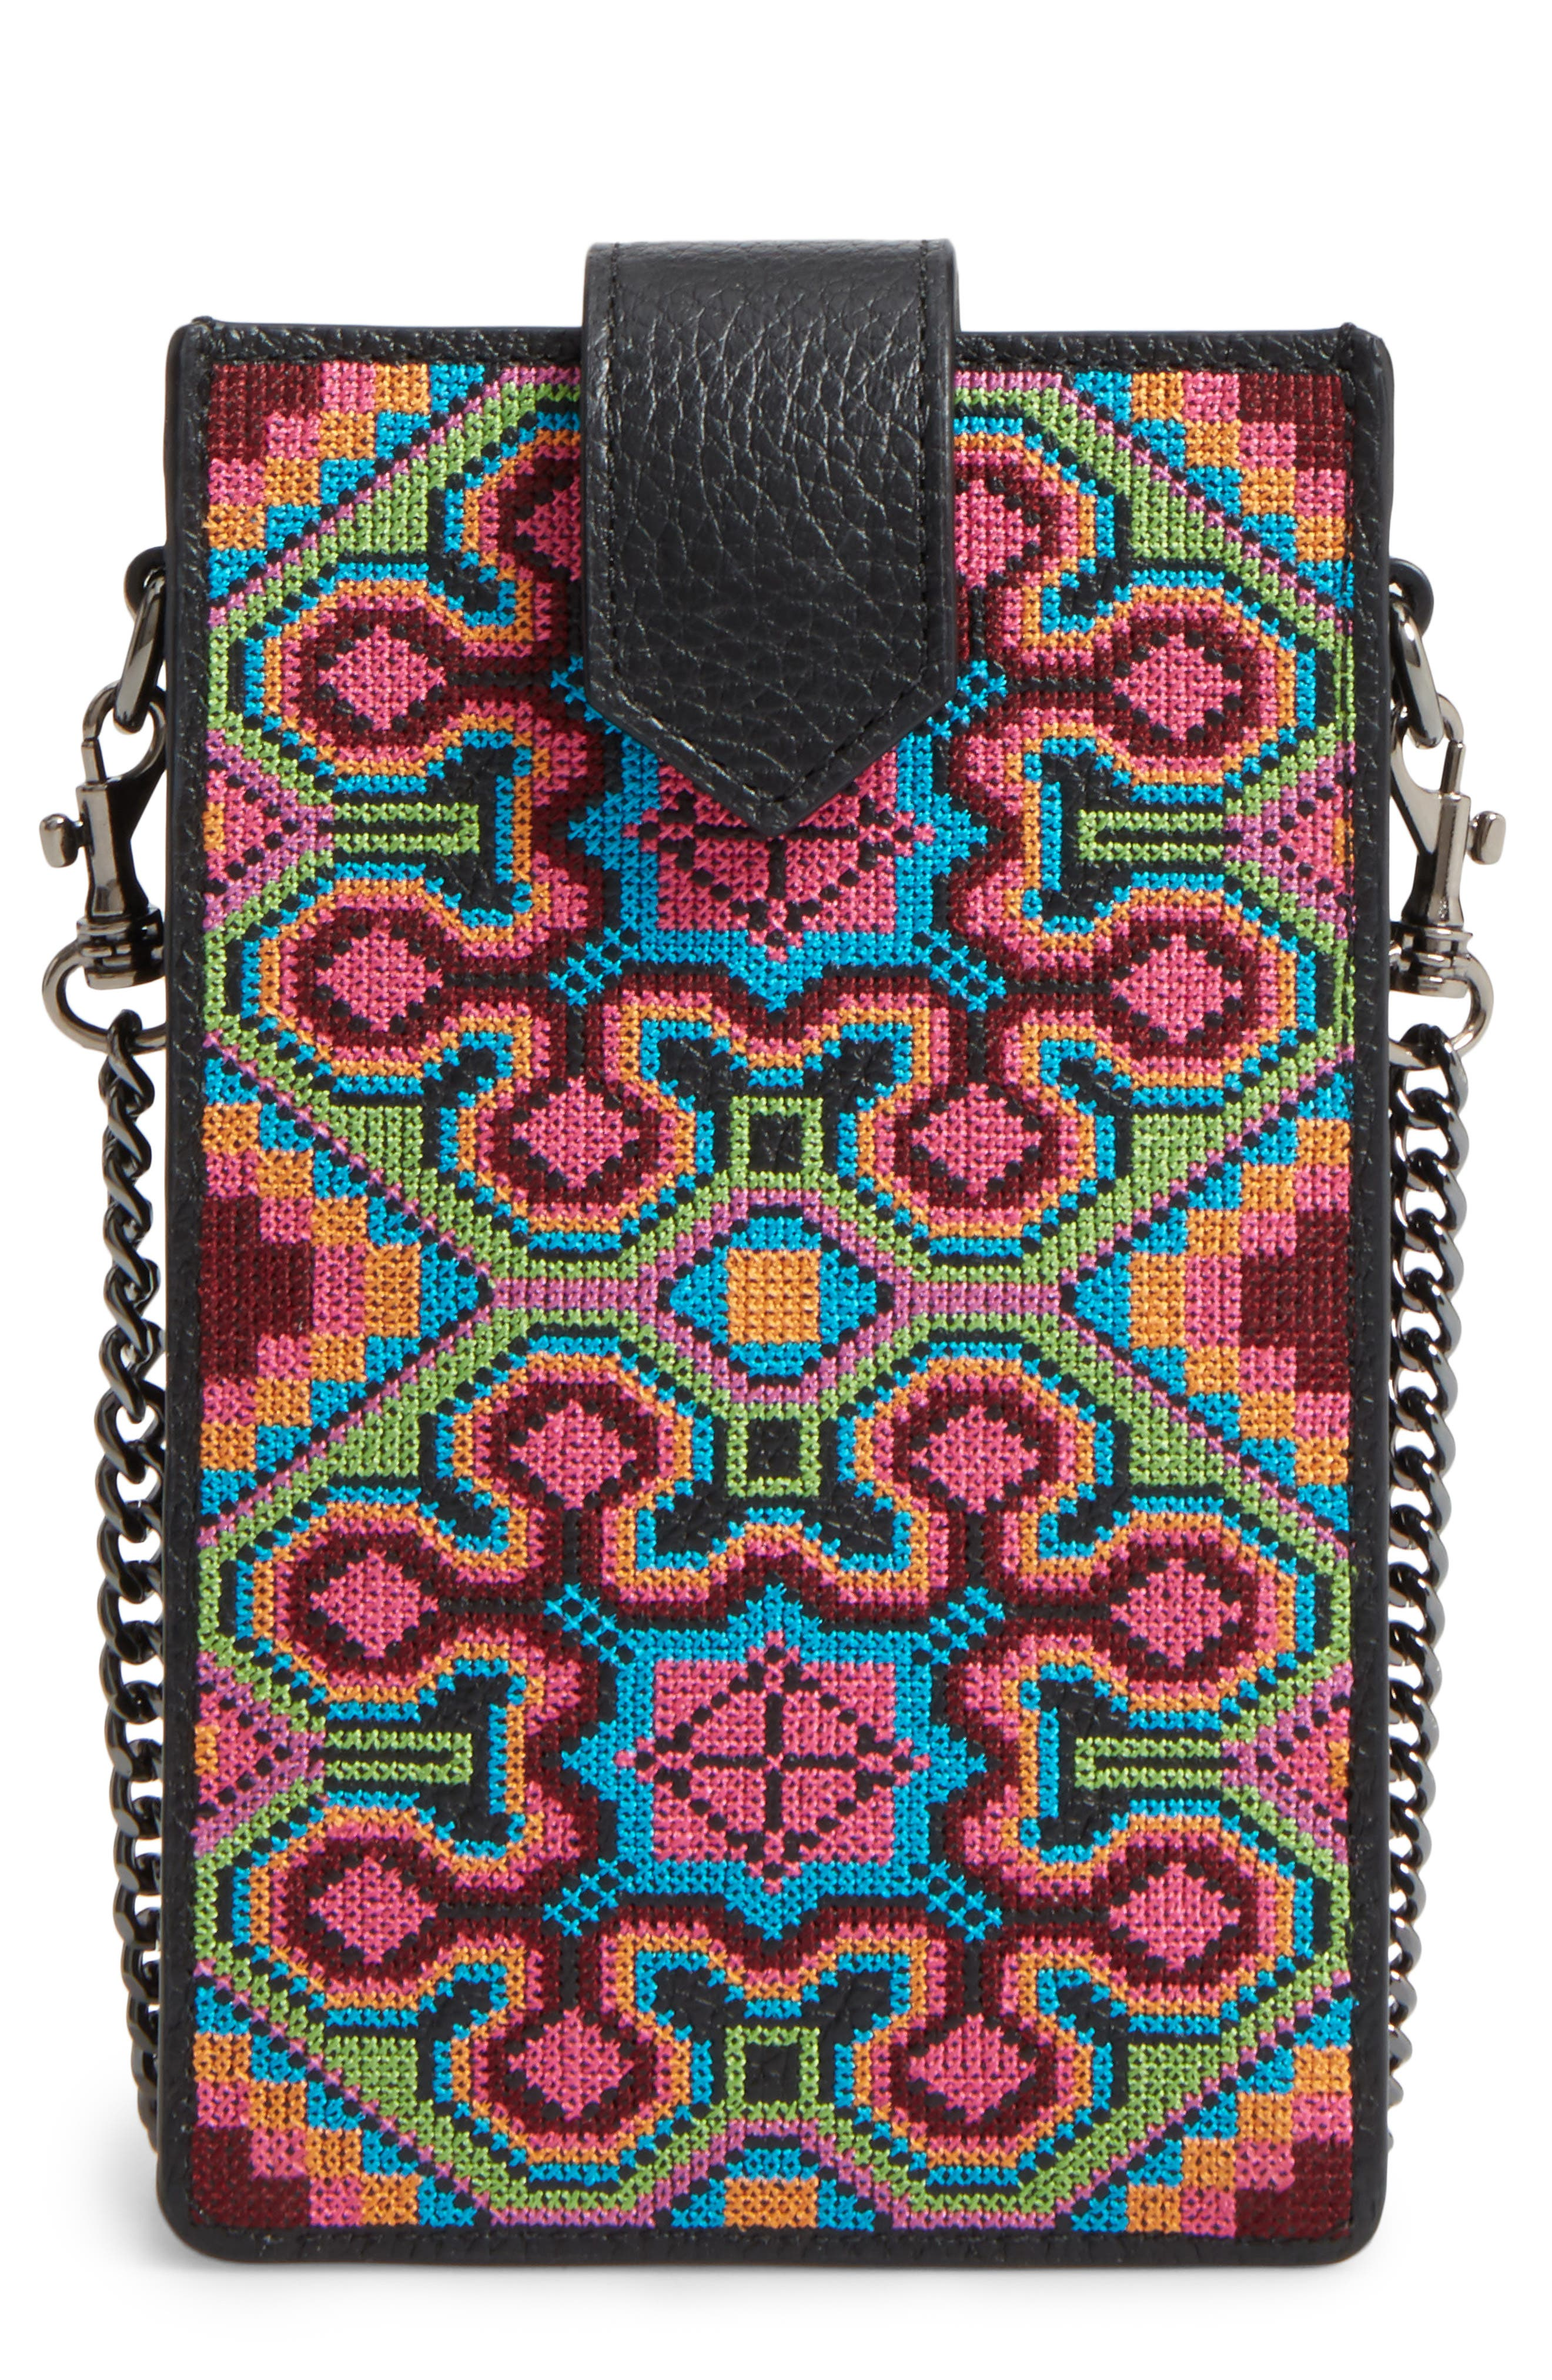 Main Image - Botkier Leather Phone Crossbody Case (Nordstrom Exclusive)